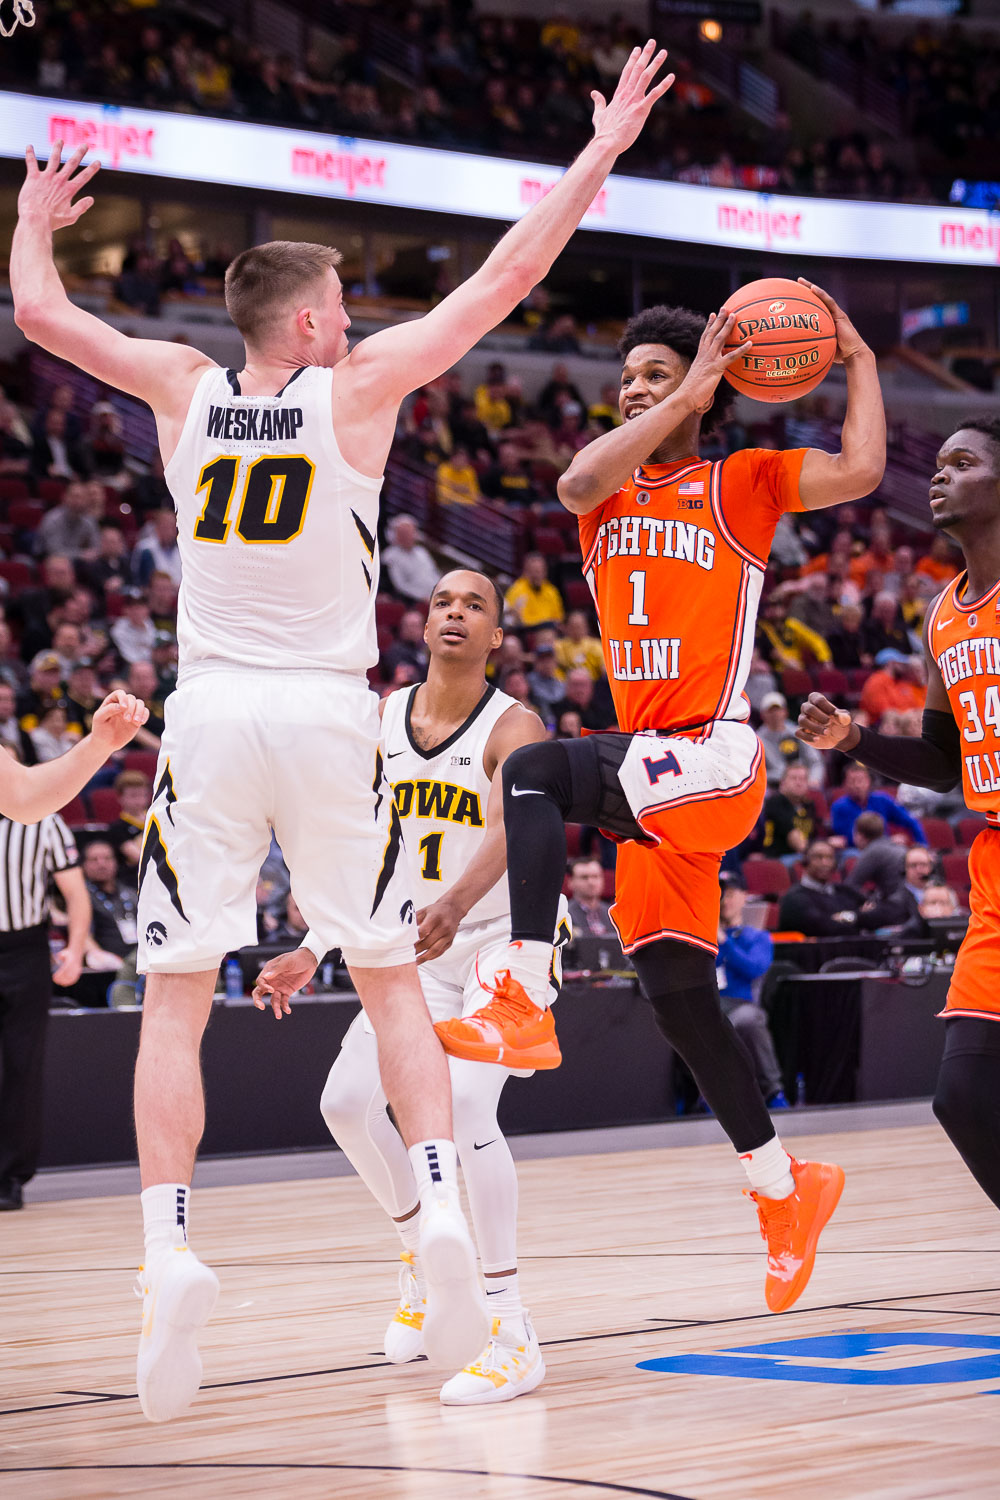 Illinois+guard+Trent+Frazier+%281%29+goes+up+for+a+layup+during+the+game+against+Iowa+in+the+second+round+of+the+Big+Ten+Tournament+at+the+United+Center+on+Thursday%2C+March+14.+The+Illini+lost+83-62.